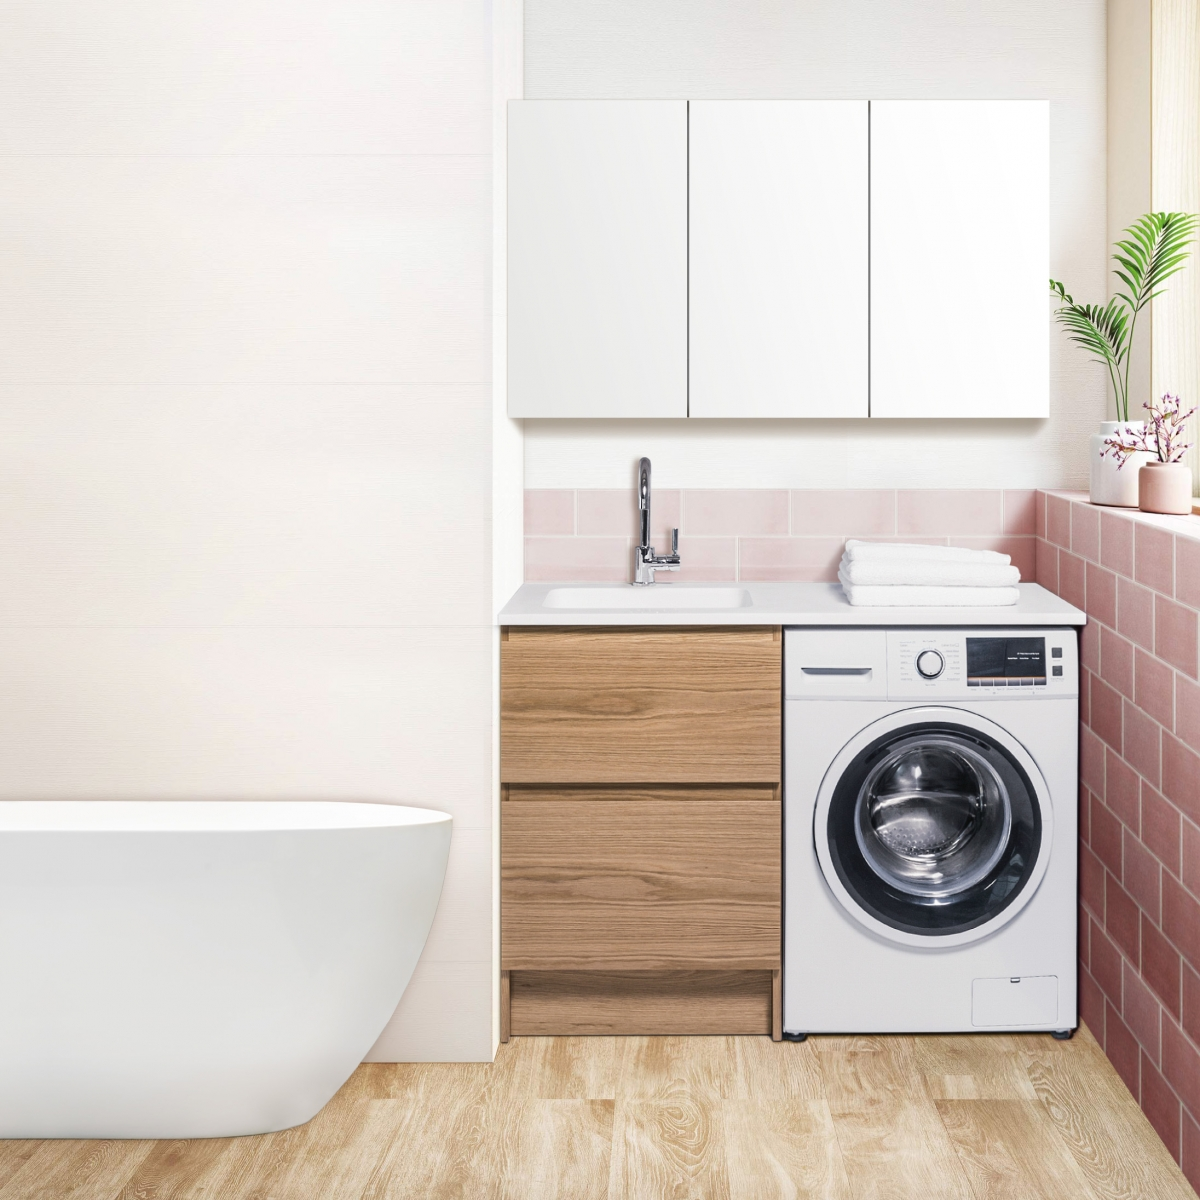 5 Ideas for a Small Laundry Spaces • Bath Co on Small Space Small Bathroom Ideas With Washing Machine id=58546